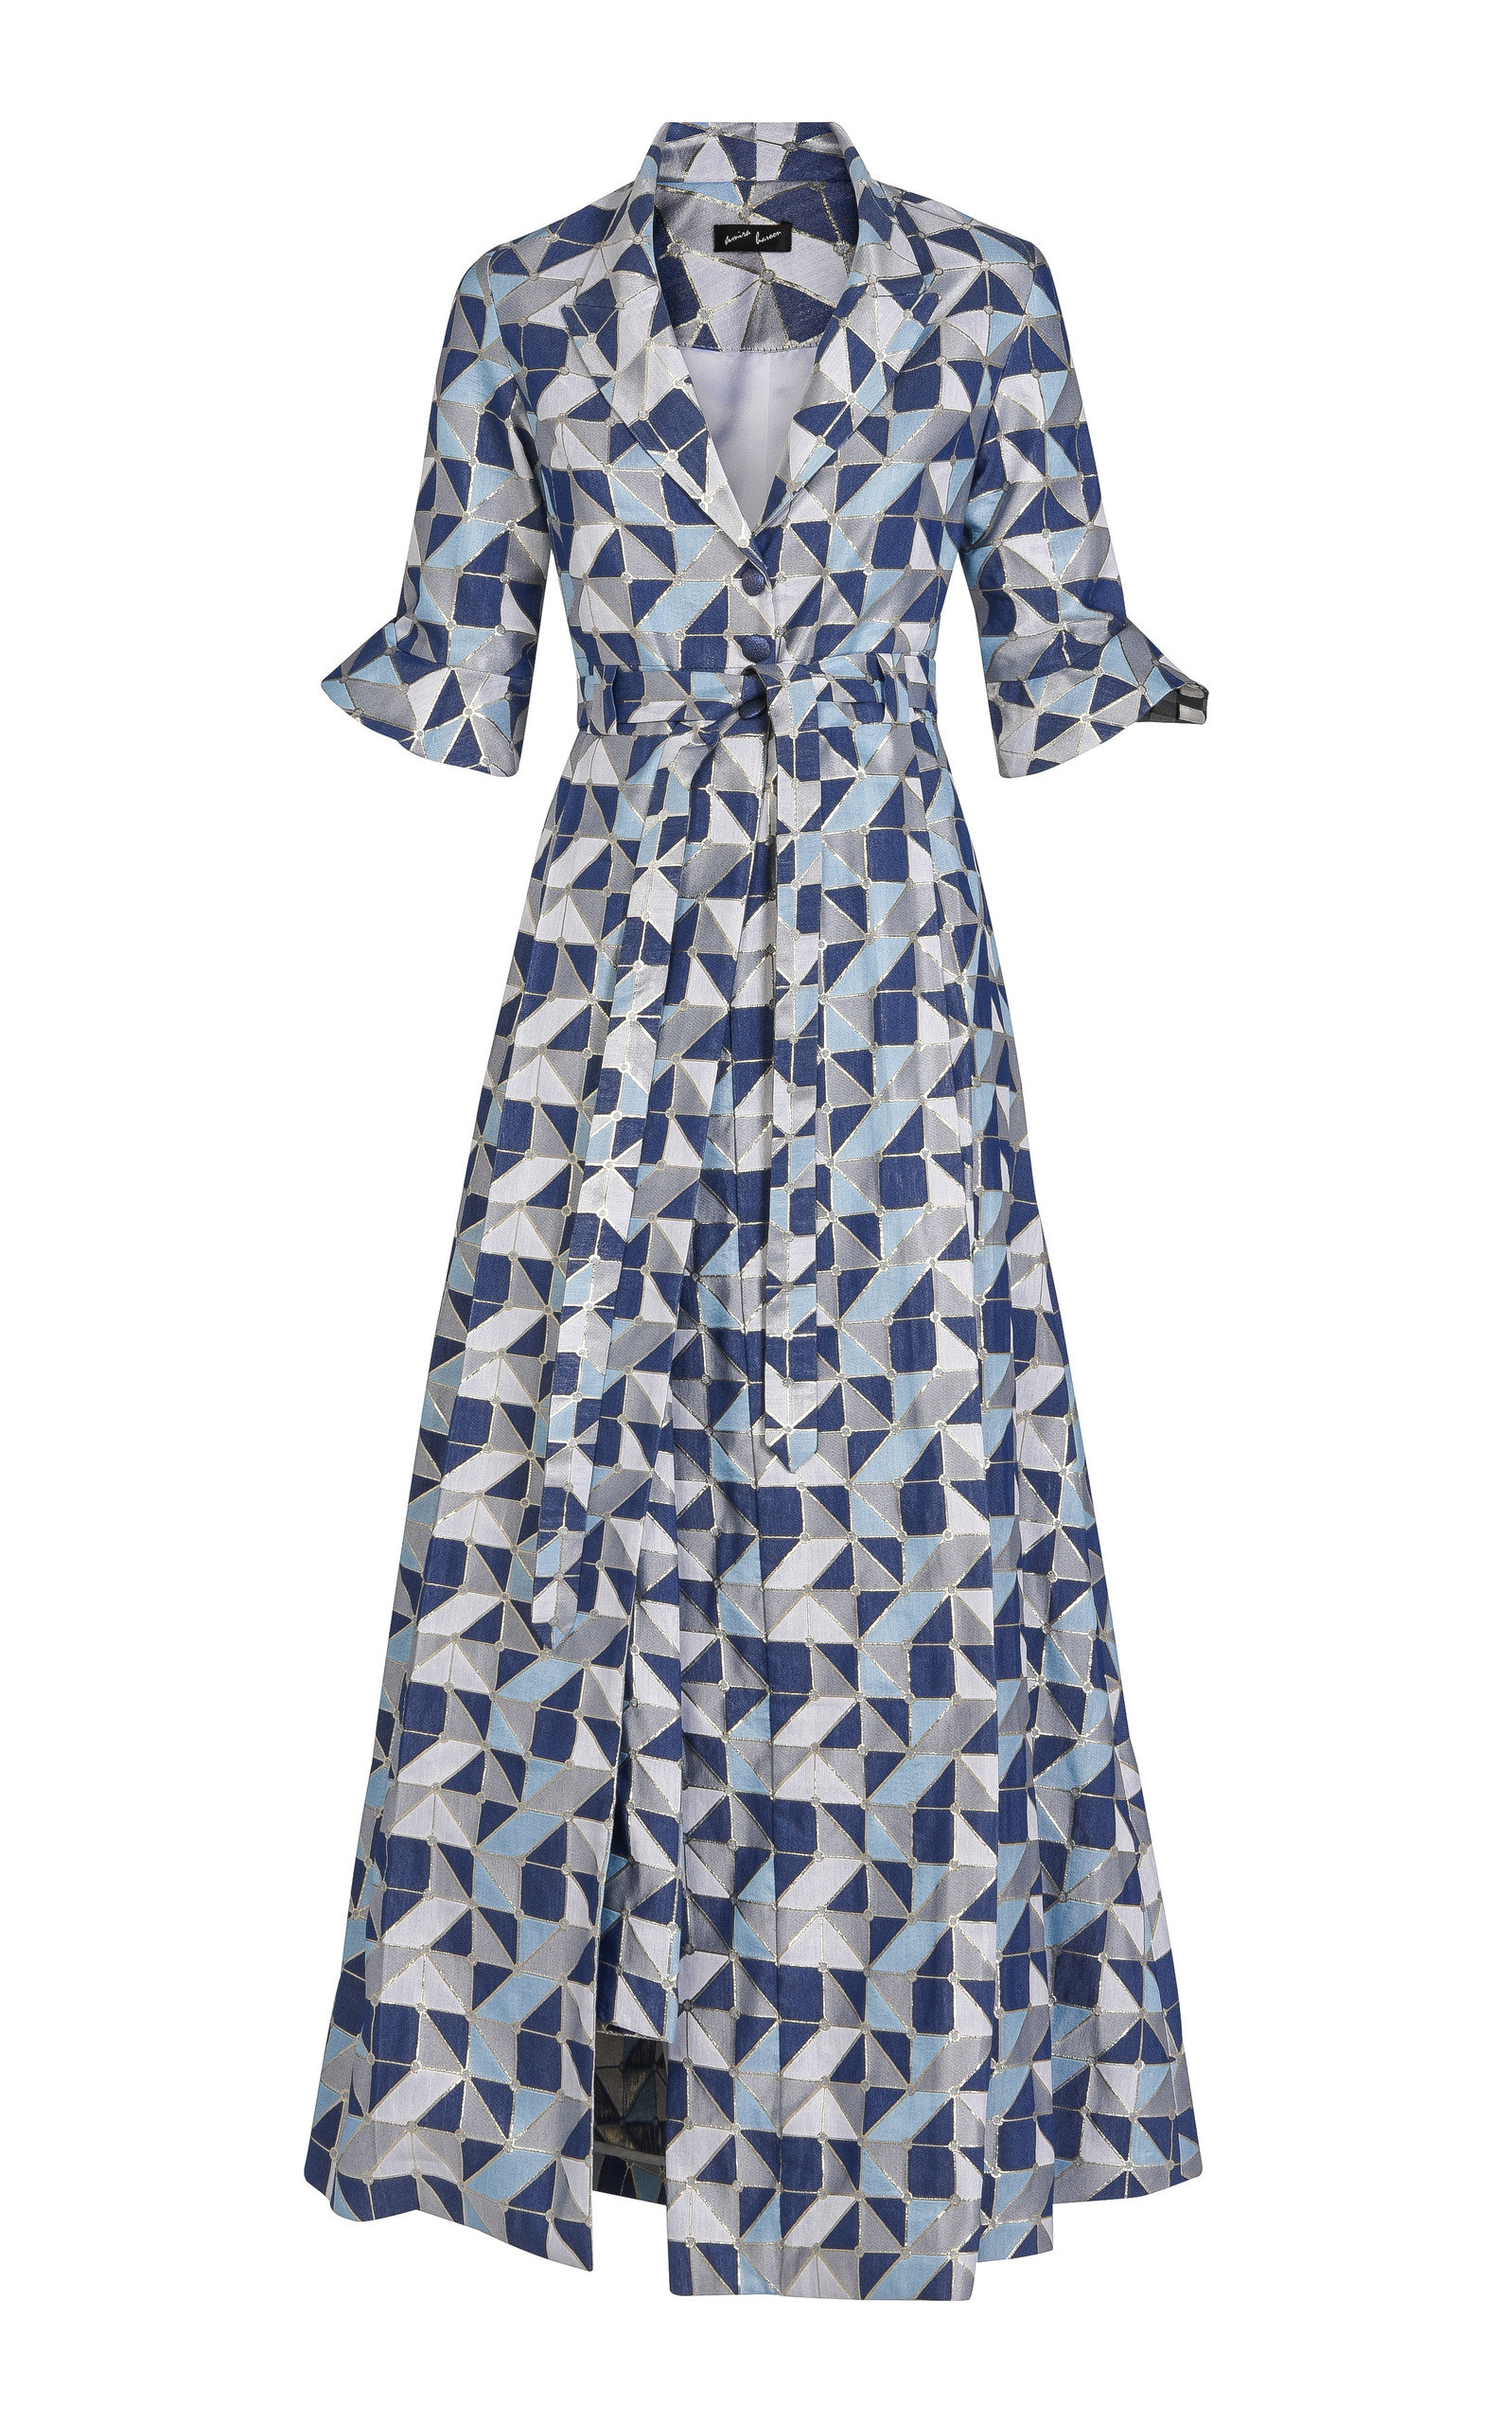 AMIRA HAROON Tailored Printed Maxi Jacket in Blue